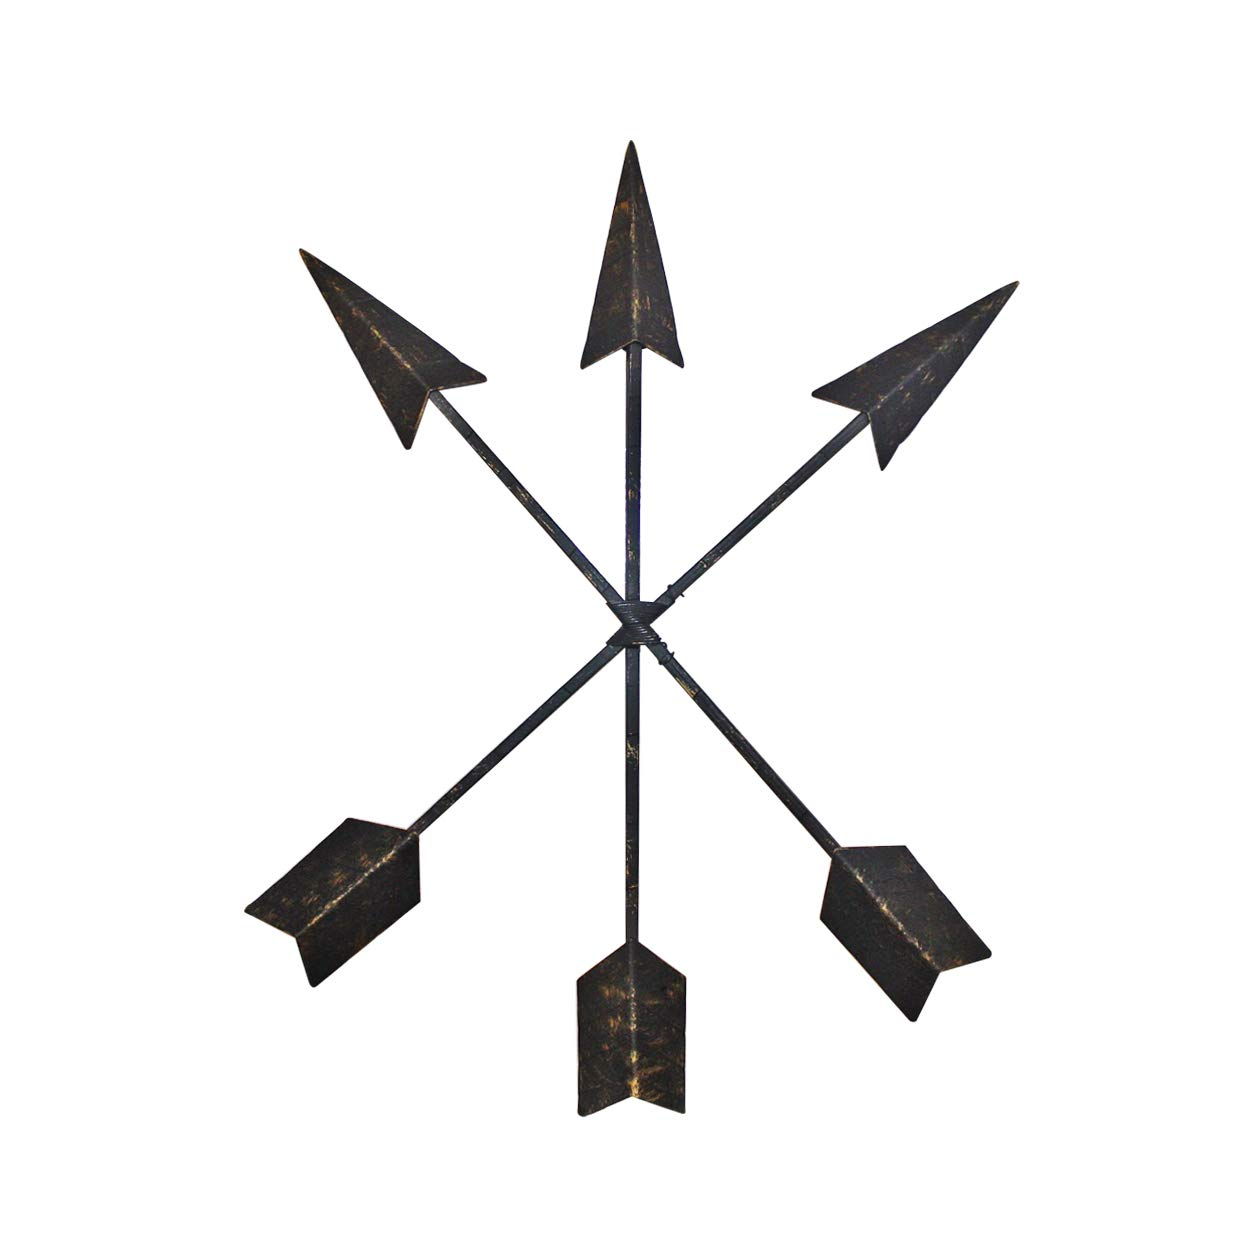 Wall Charmers 15 inch Cast Iron Arrow Wall Decor Set of 3 Native American Metal Arrows - Handmade Farmhouse Decor by Wall Charmers